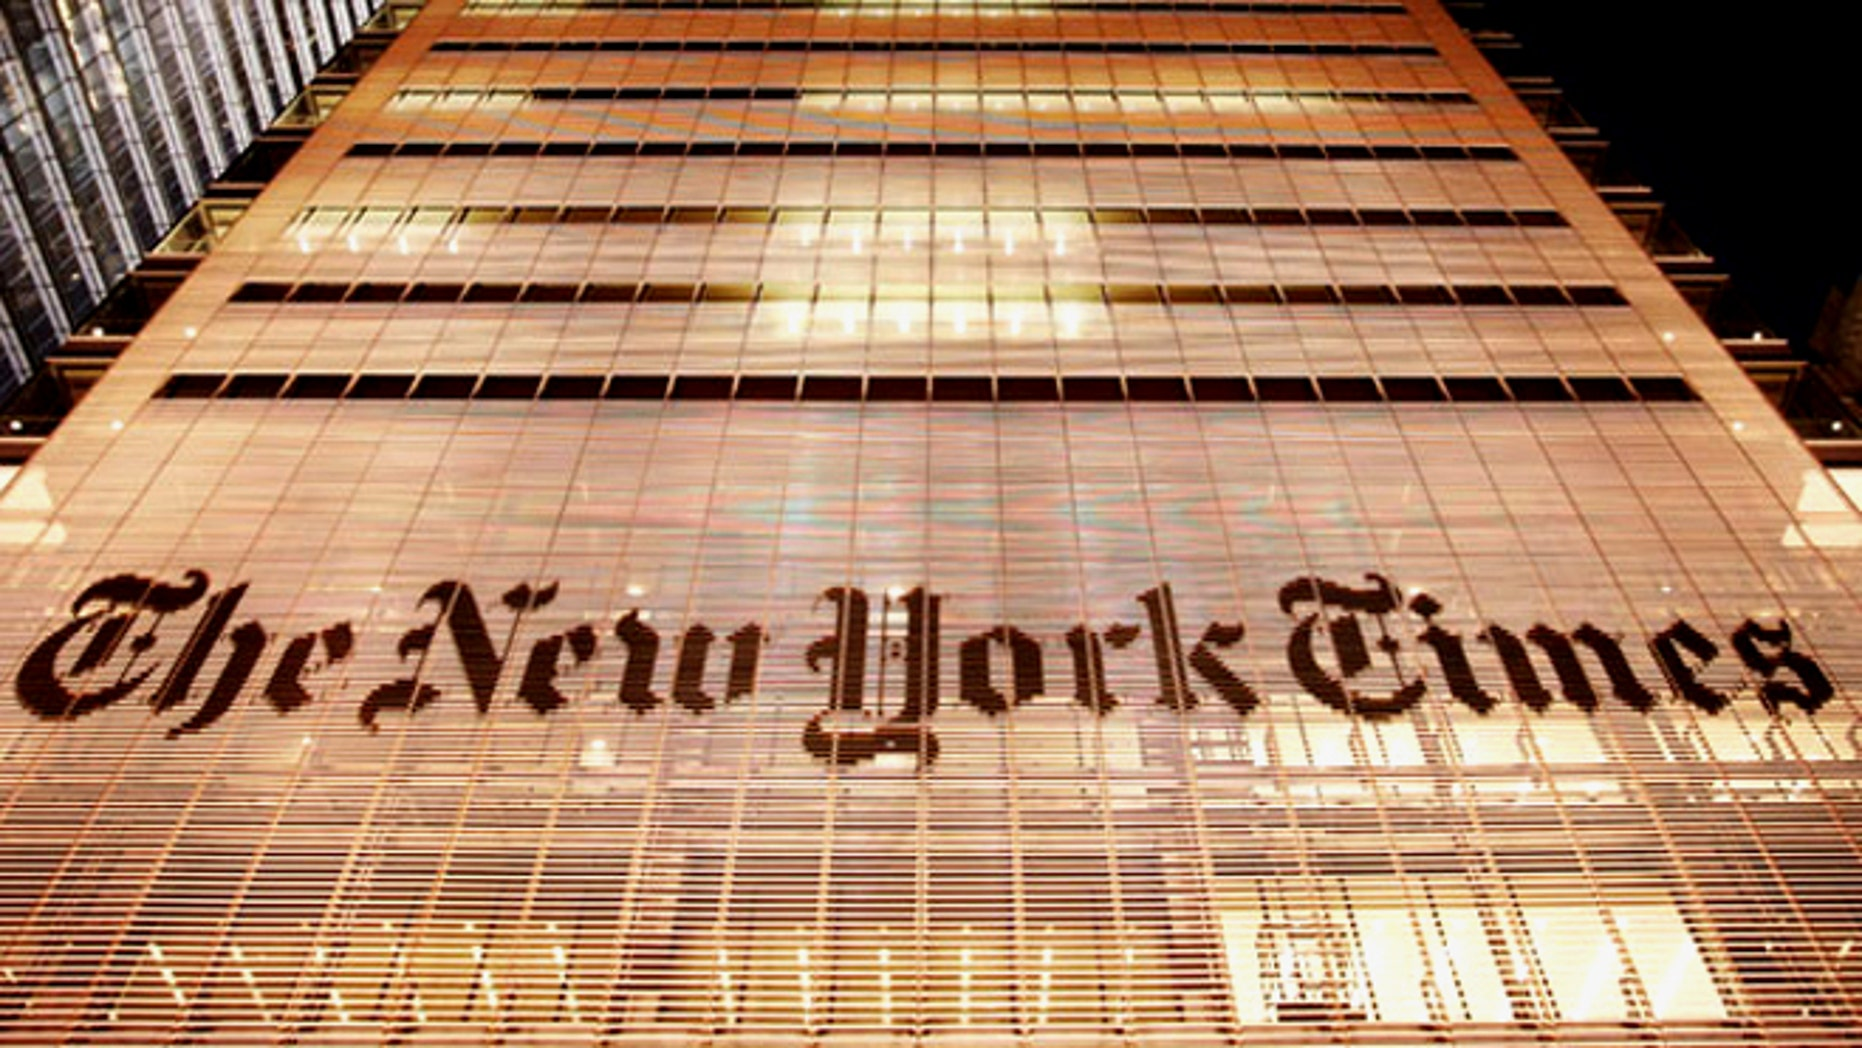 The New York Times building is shown in New York.